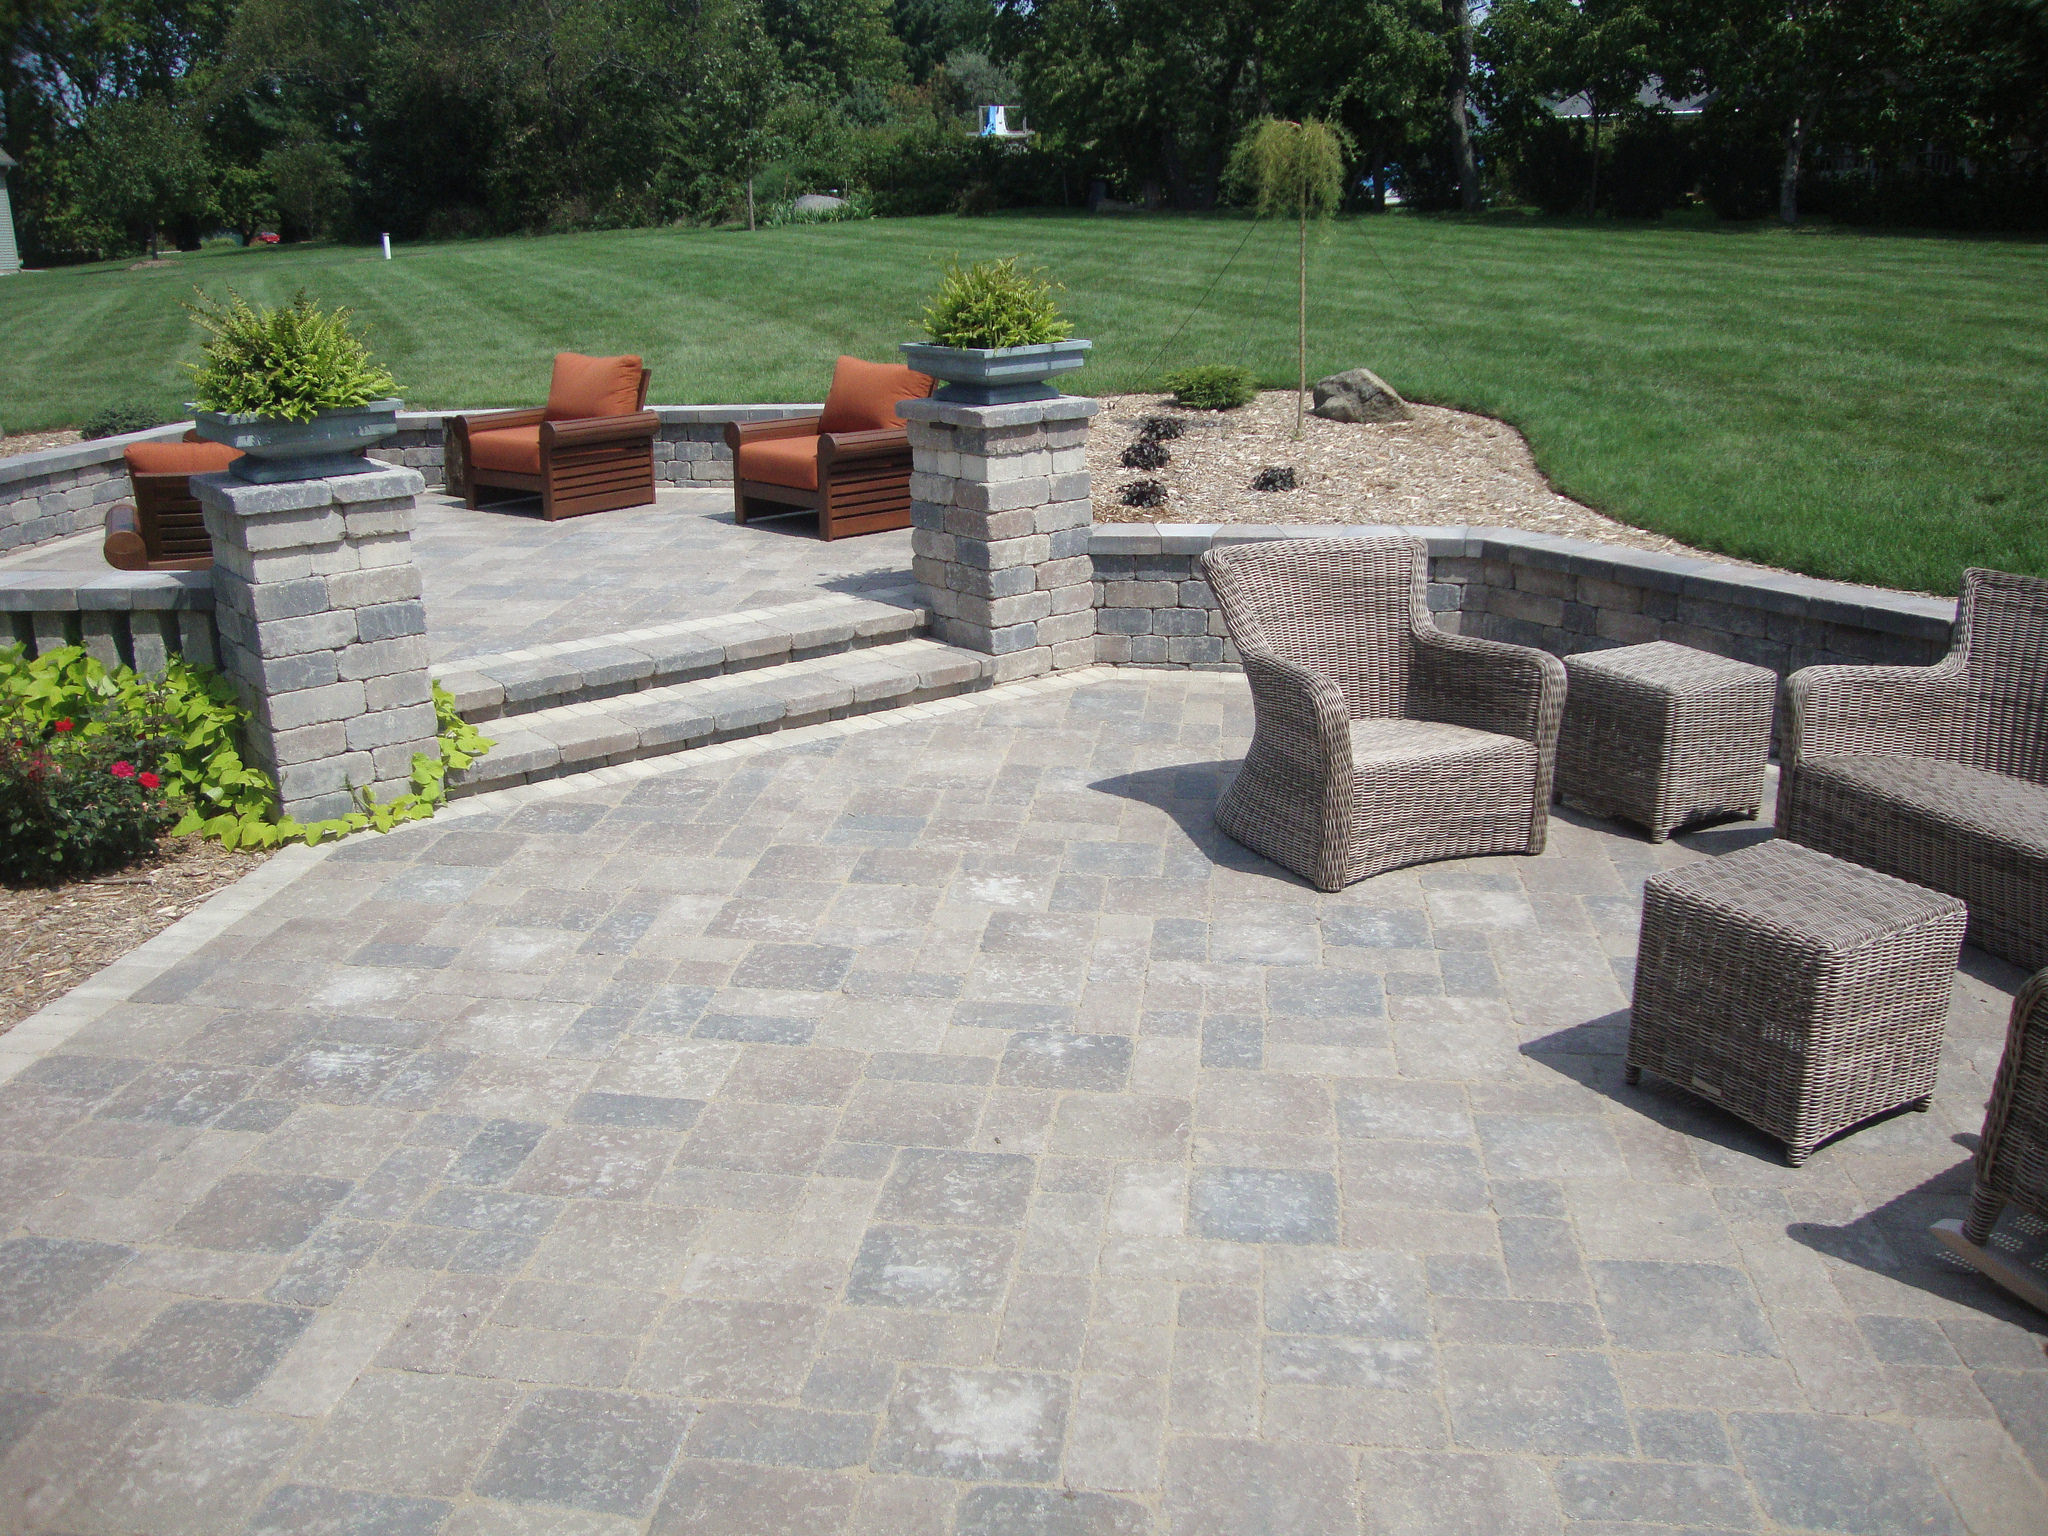 Top landscaper for patio pavers in Madison WI